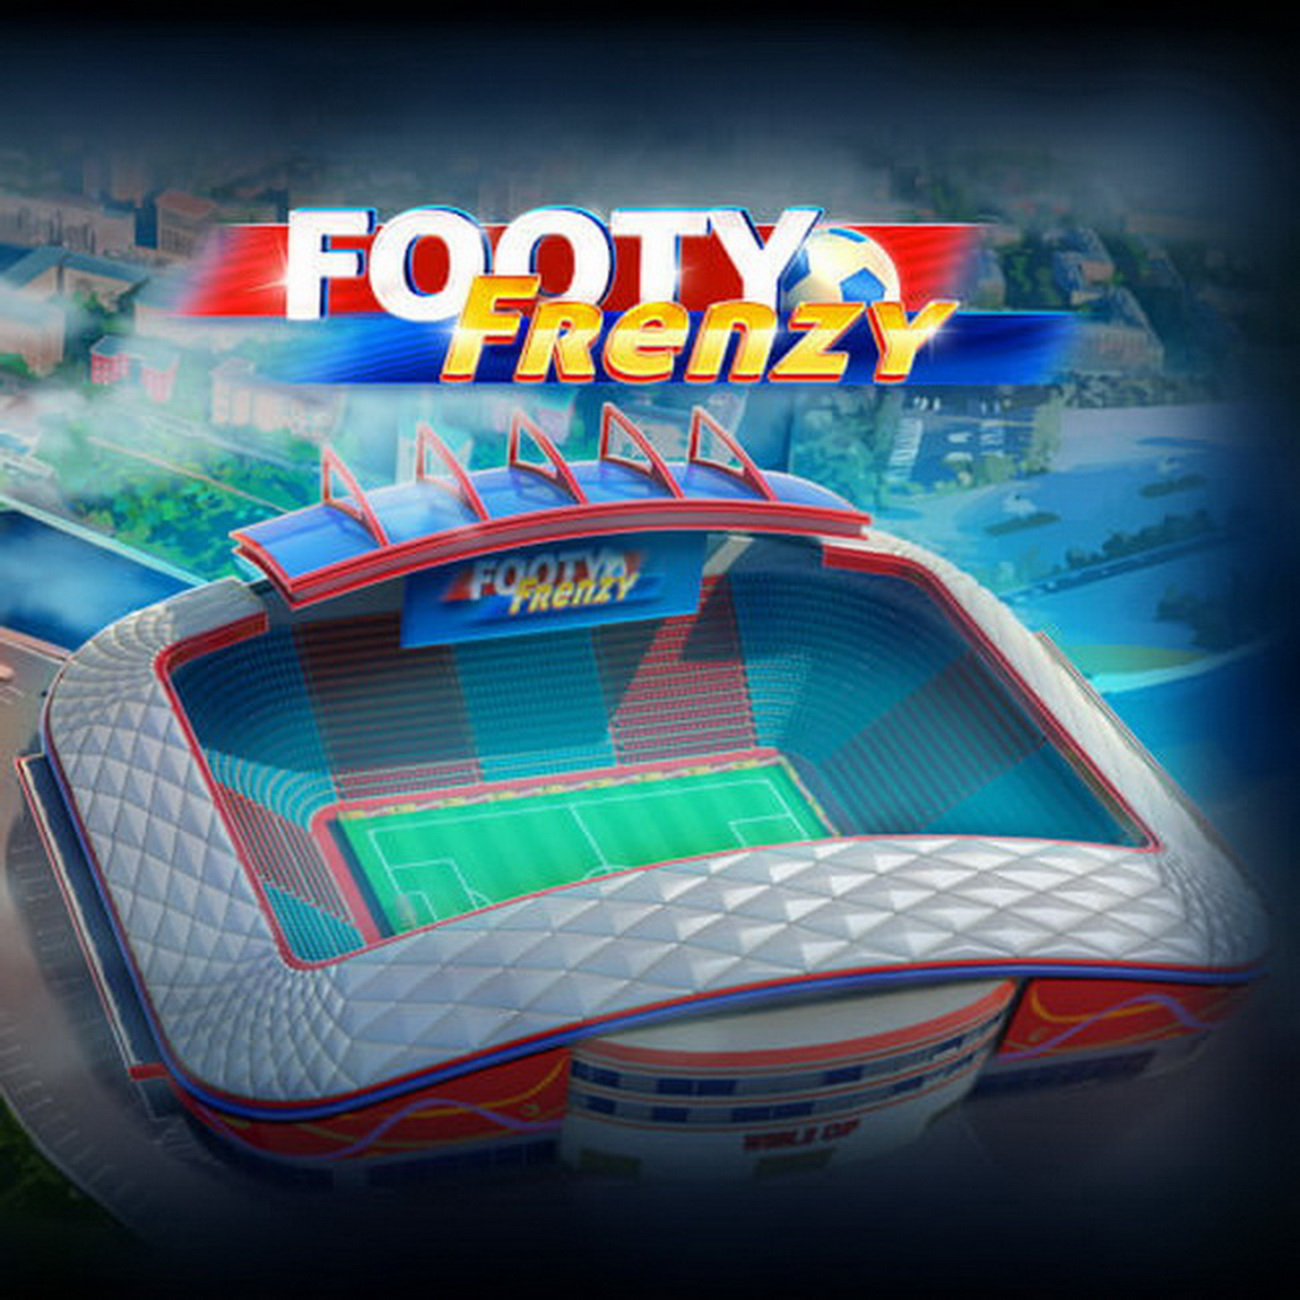 The Footy Frenzy Online Slot Demo Game by Cayetano Gaming